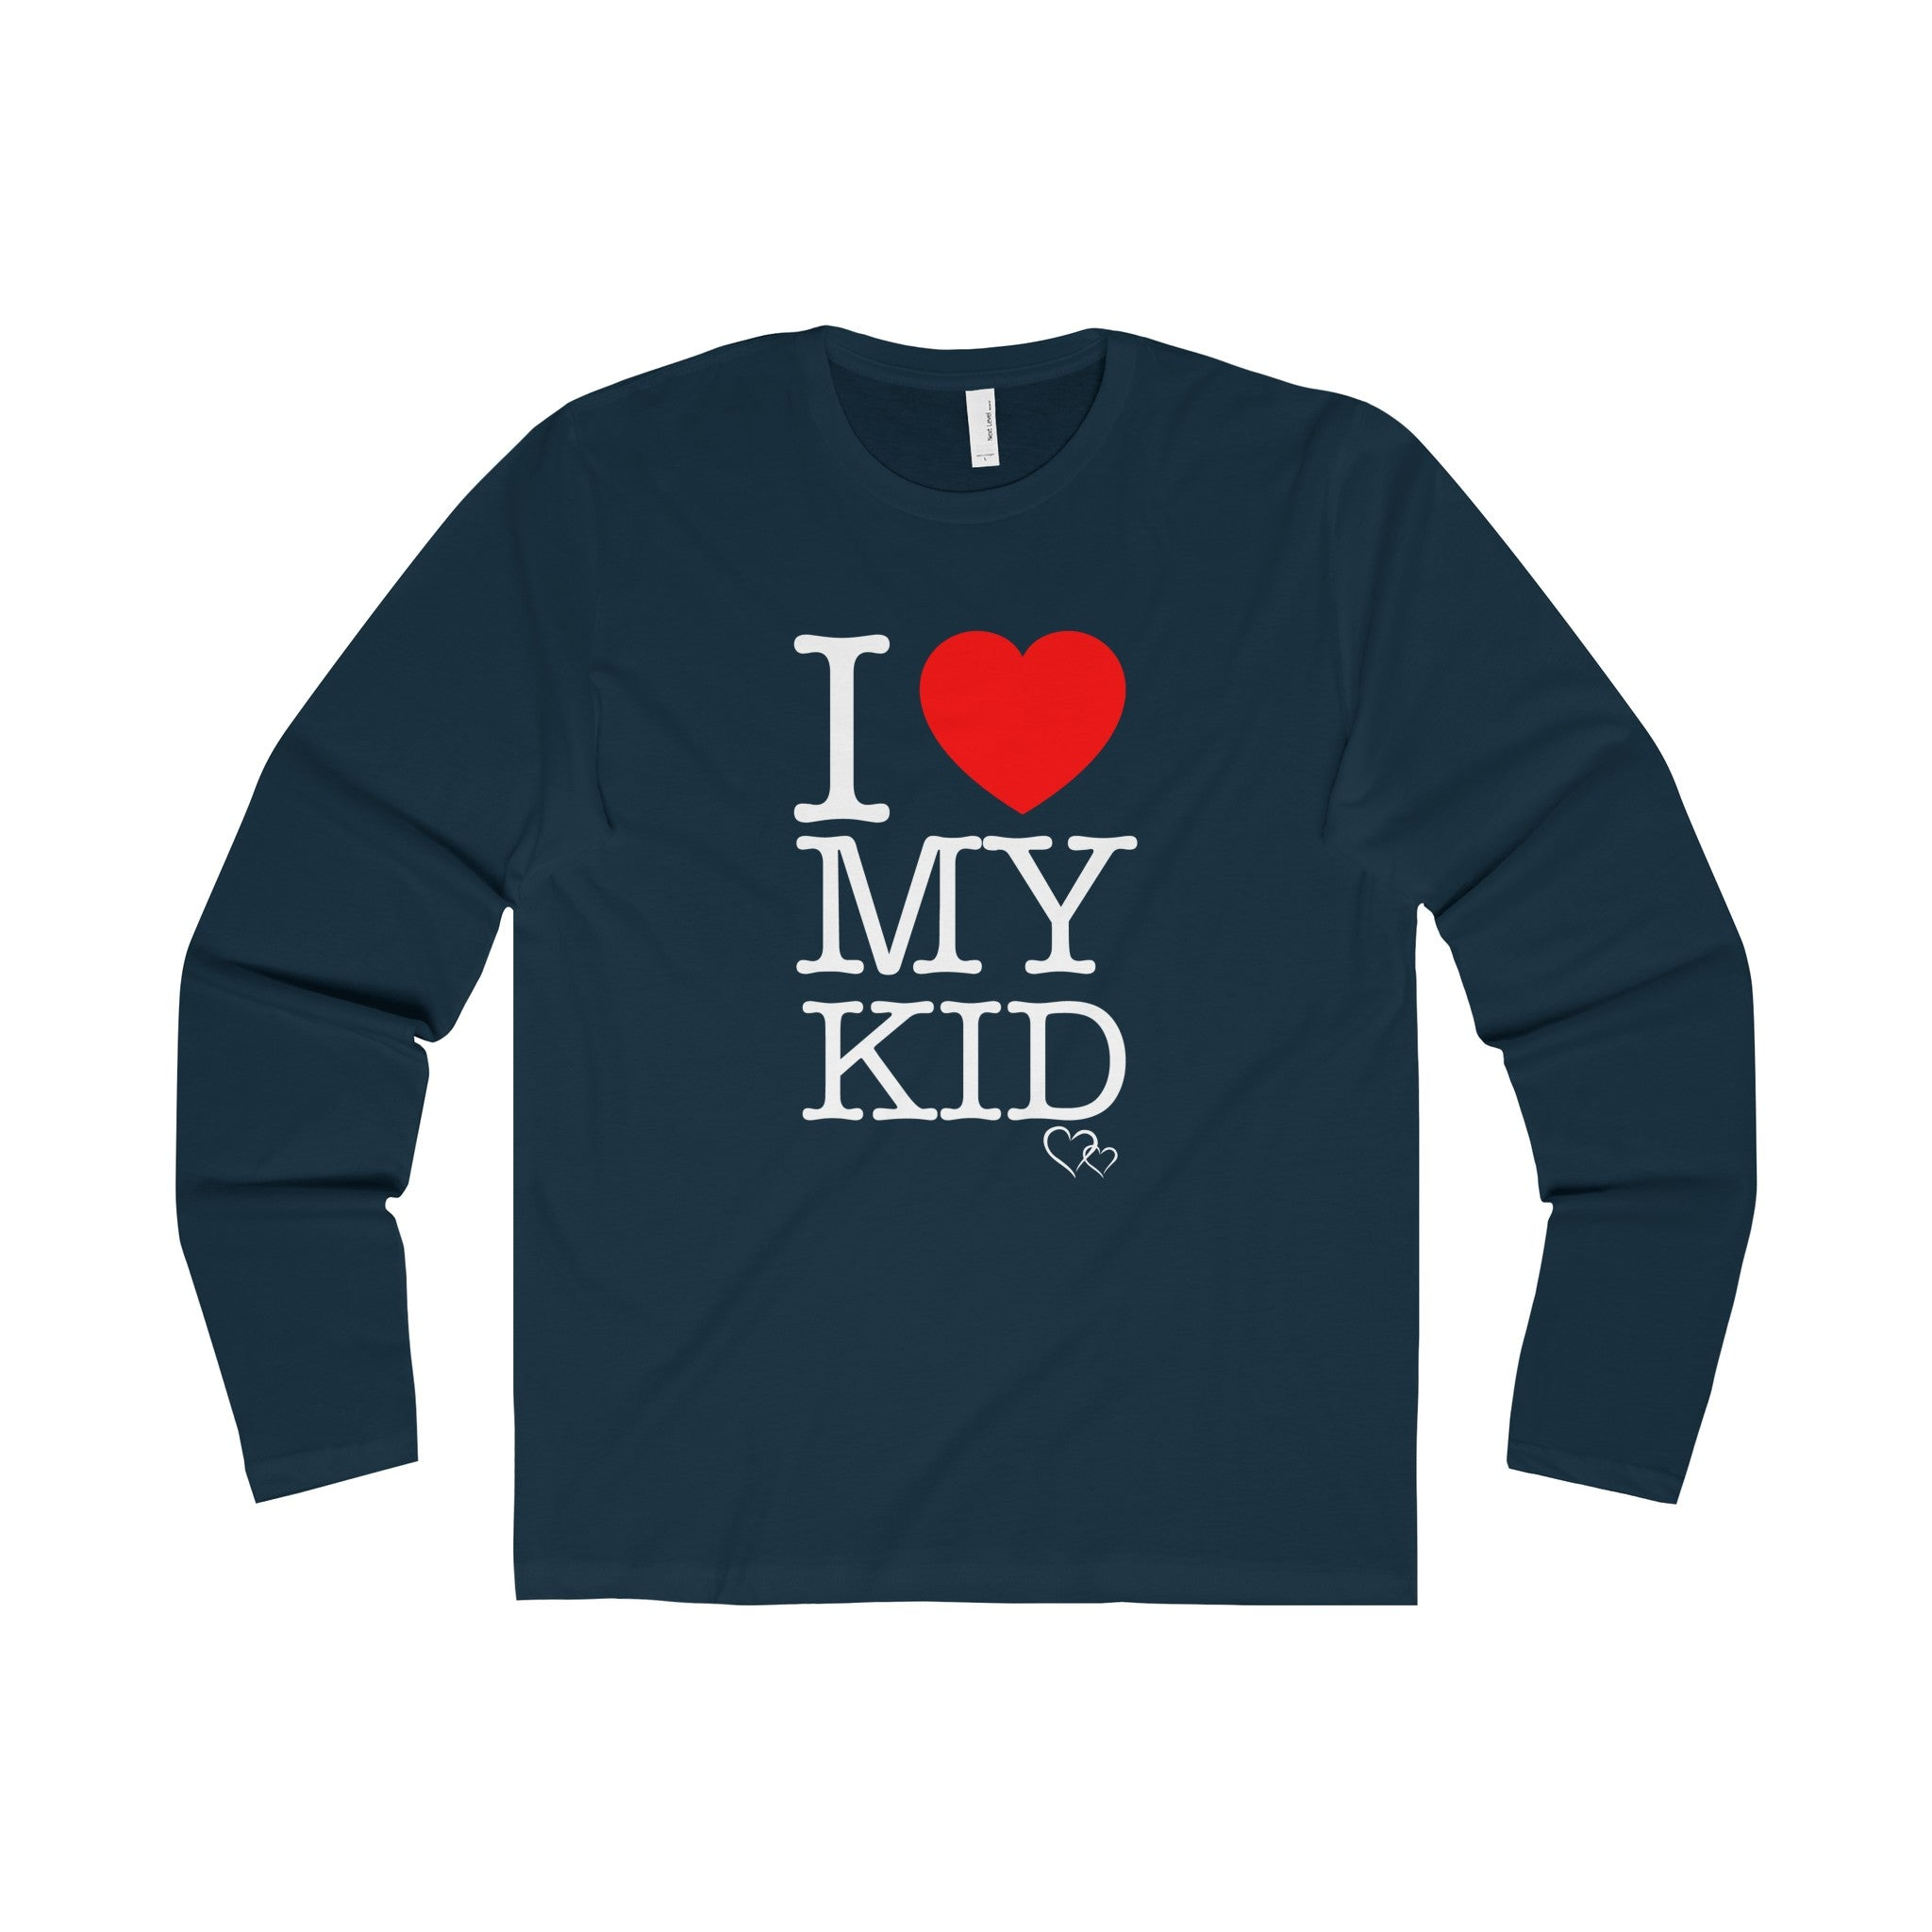 I LOVE MY KID - Long Sleeve (Unisex)